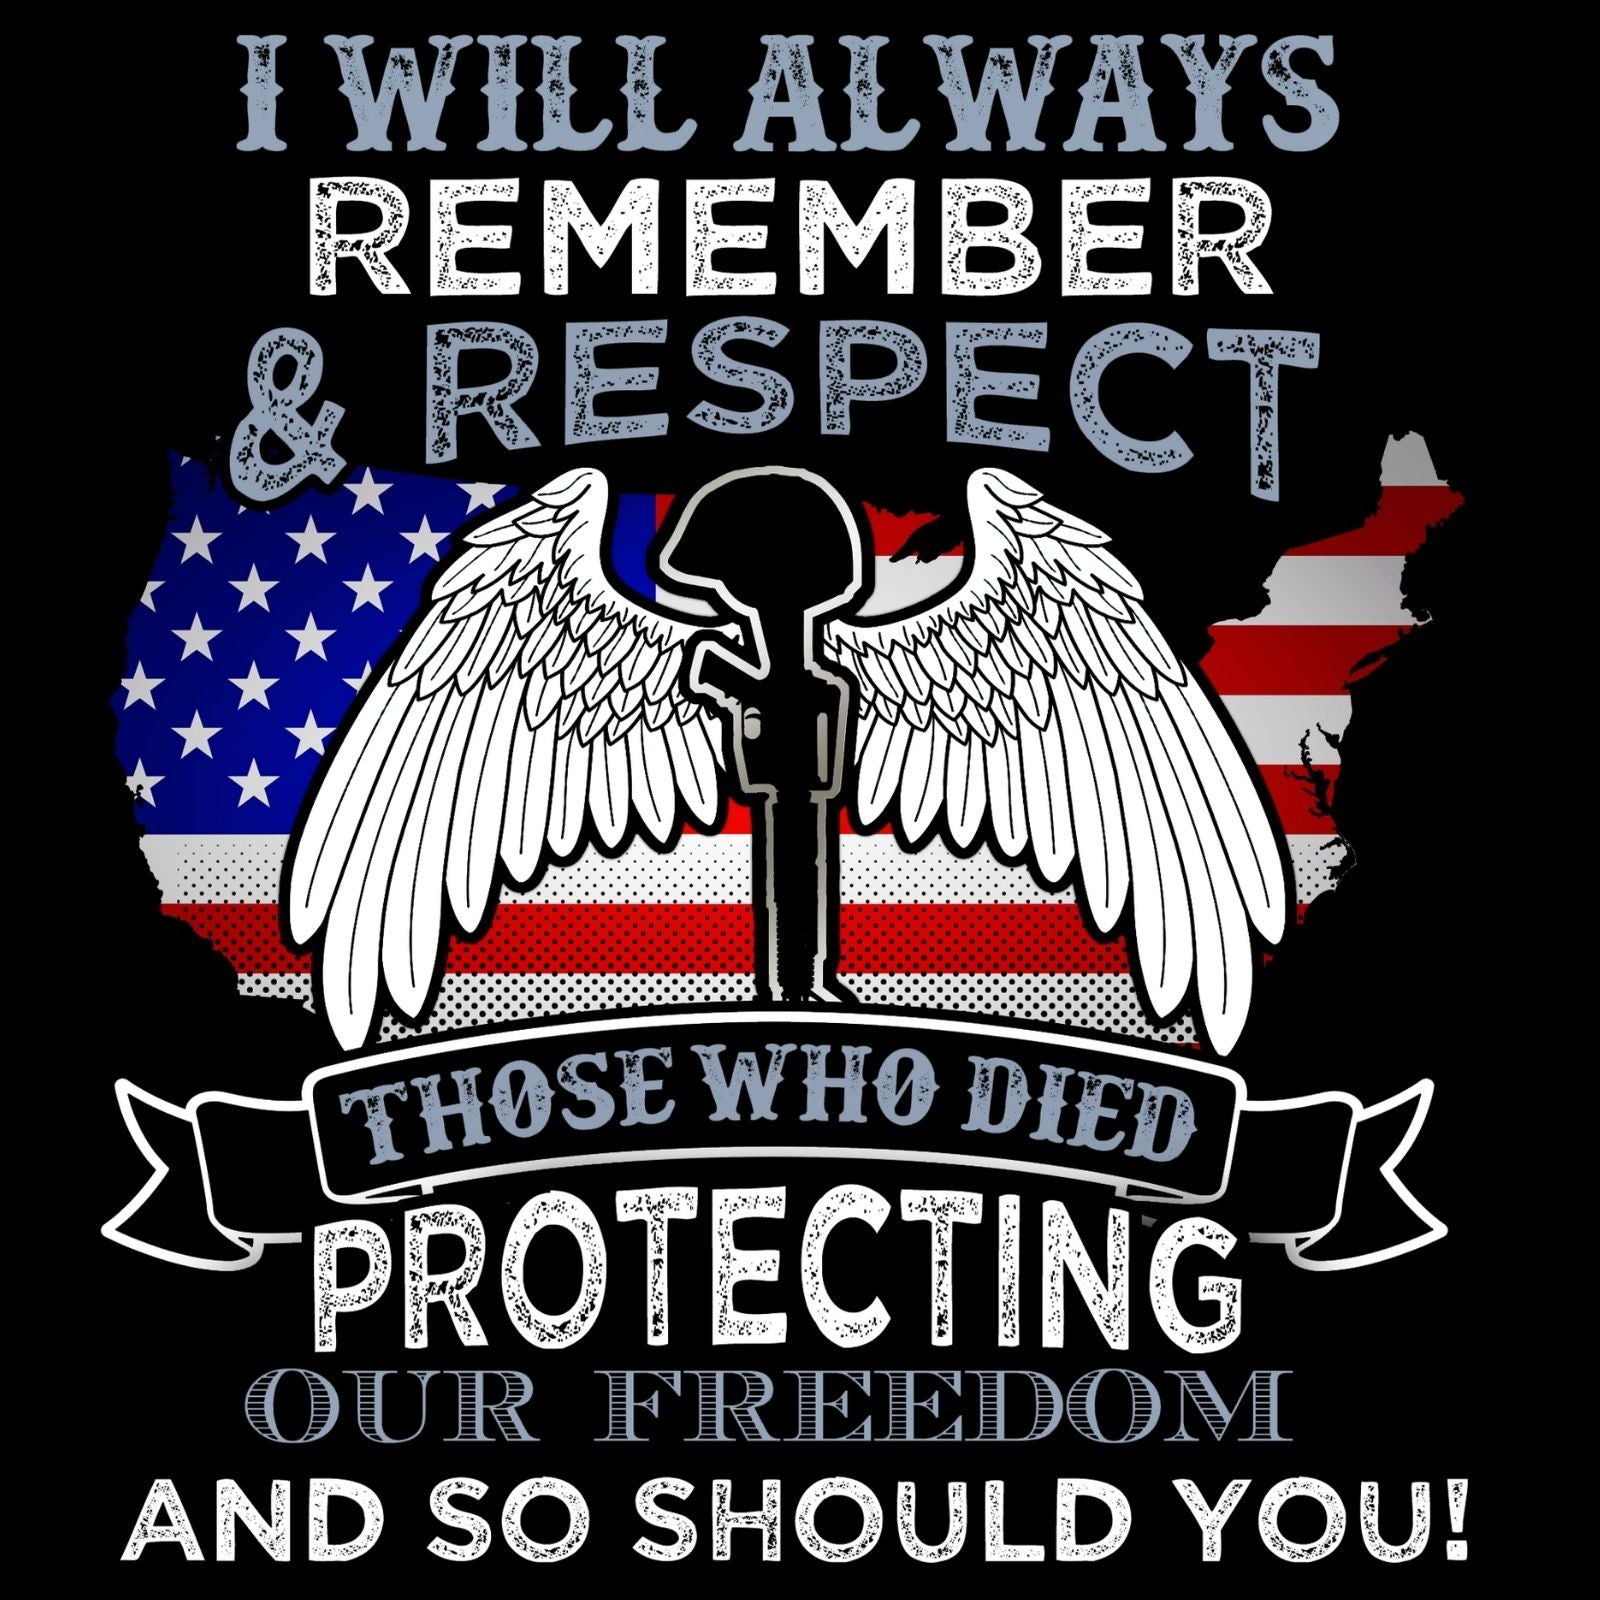 I Will Always Remember And Respect Those Who Died Protecting Our Freedom And So Should You! - Bastard Graphics